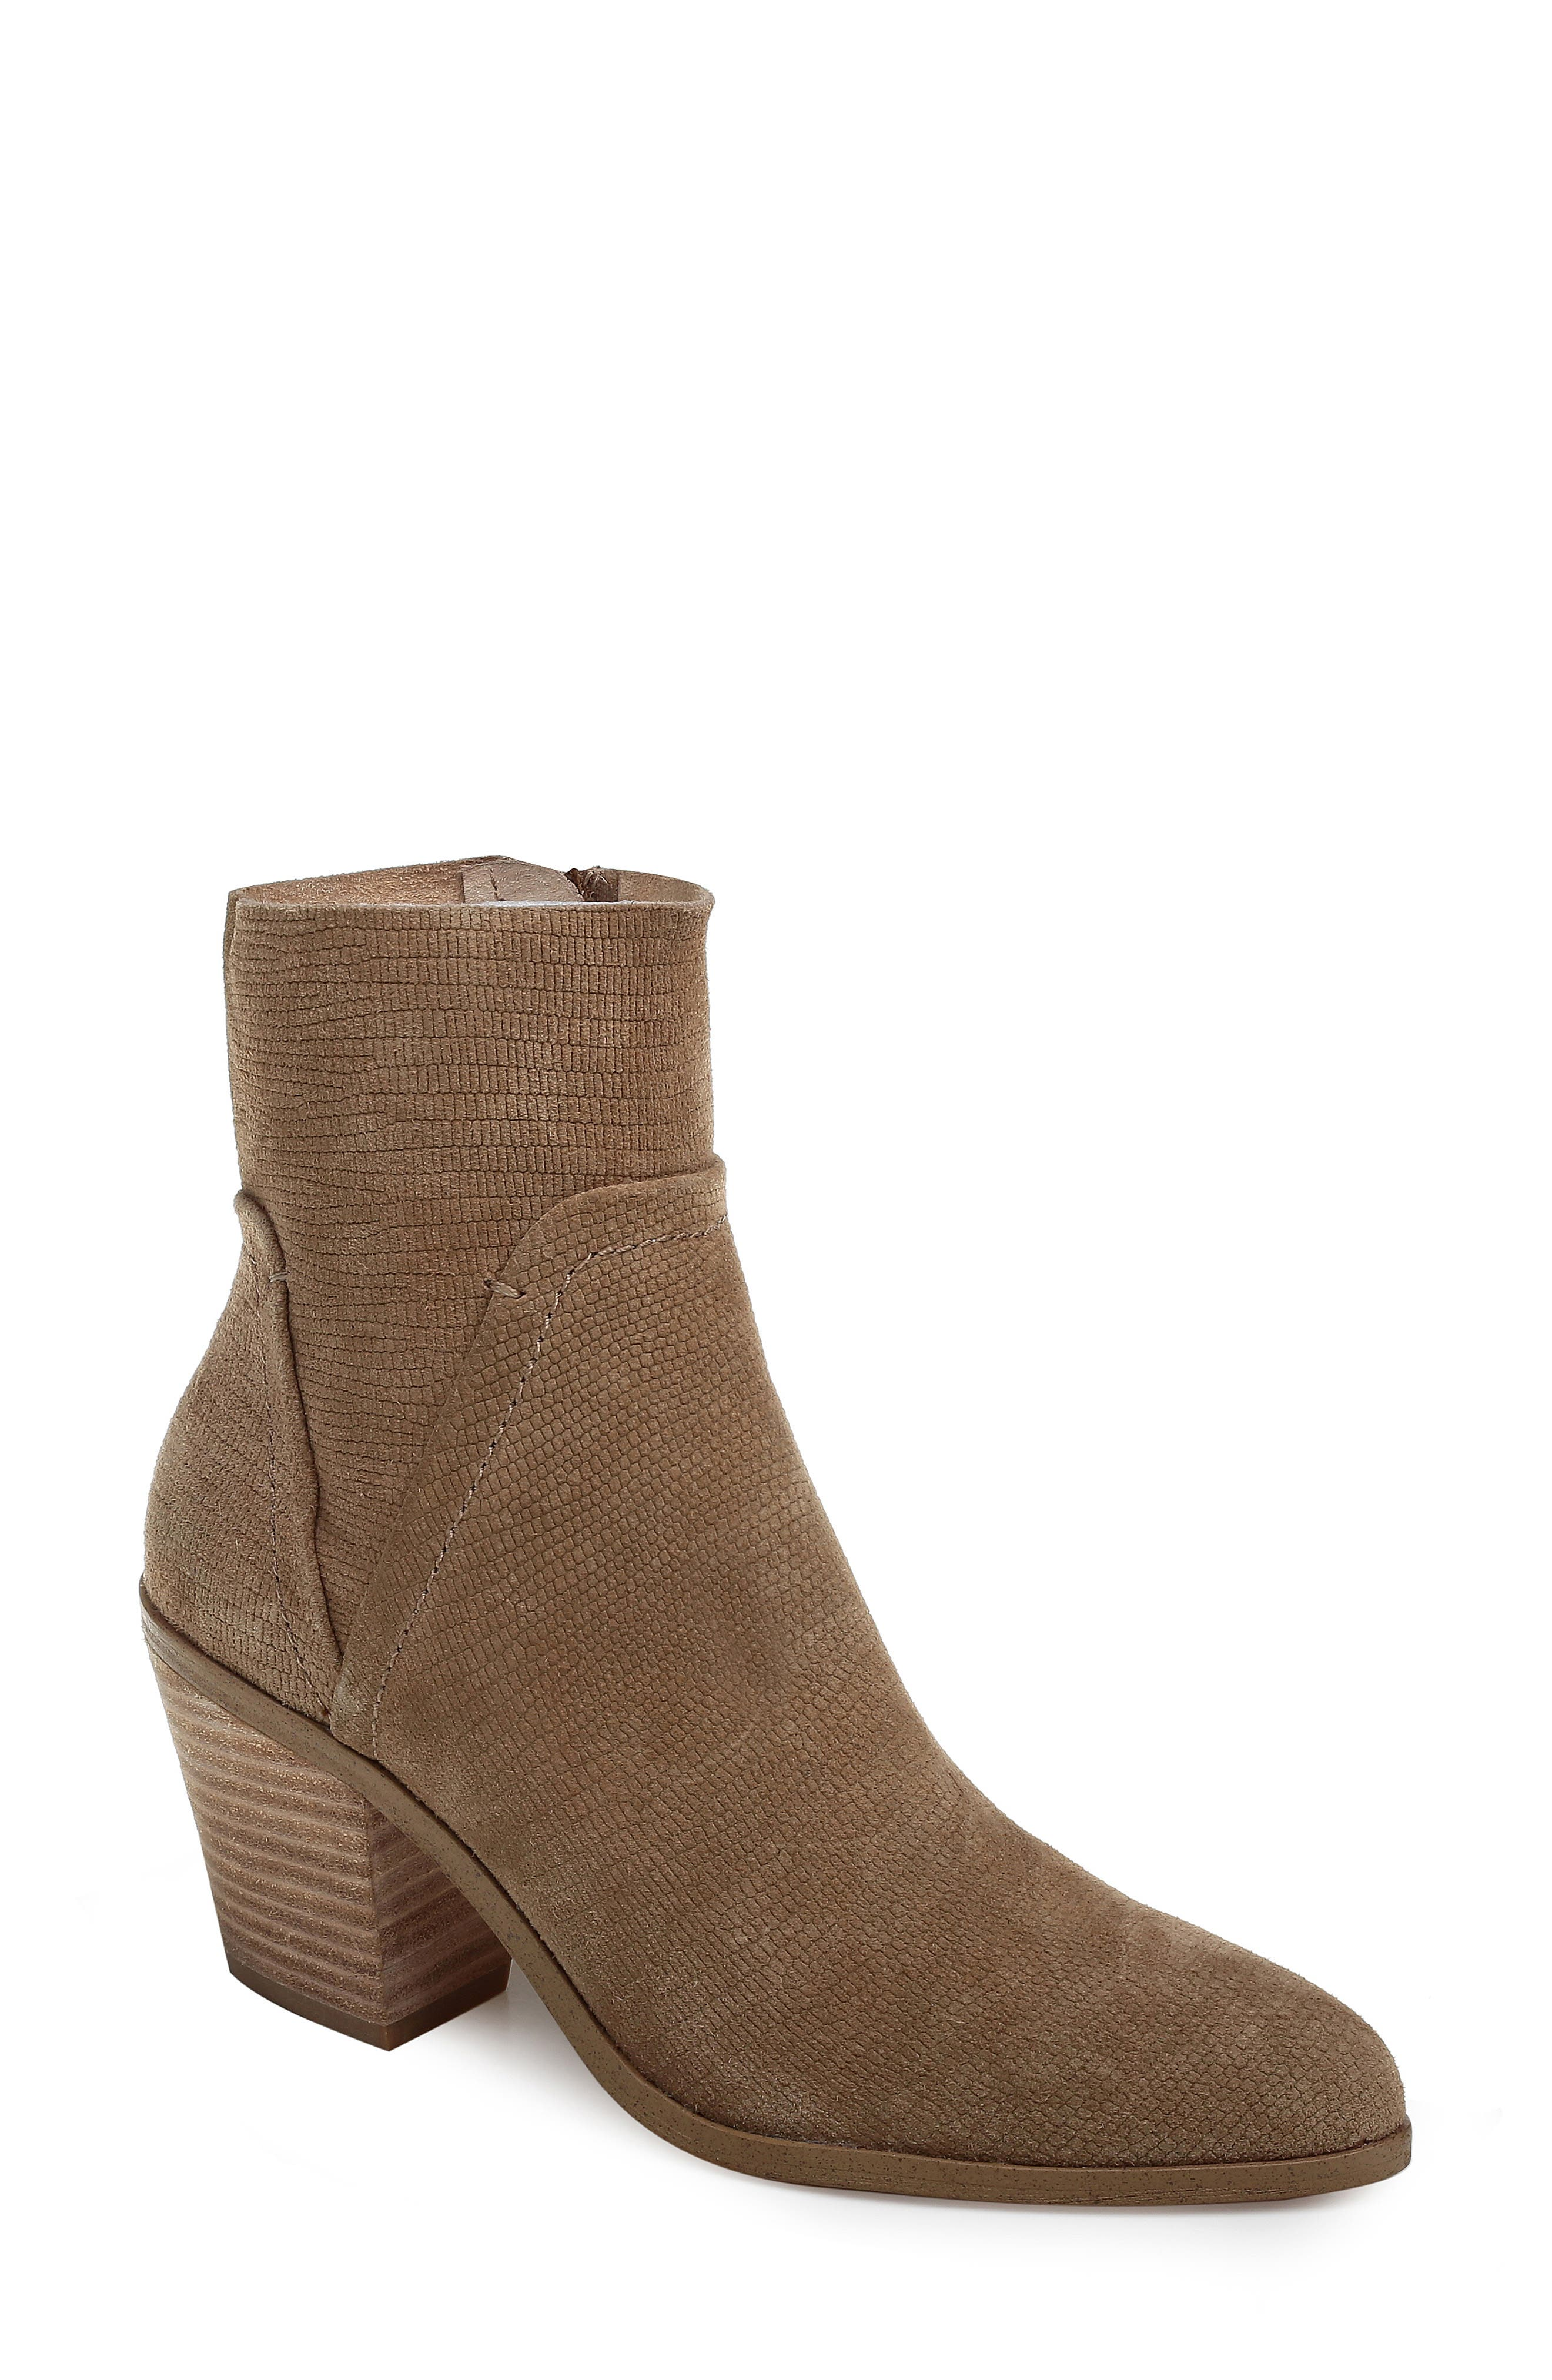 Cherie Bootie,                             Main thumbnail 1, color,                             OAT EMBOSSED SUEDE